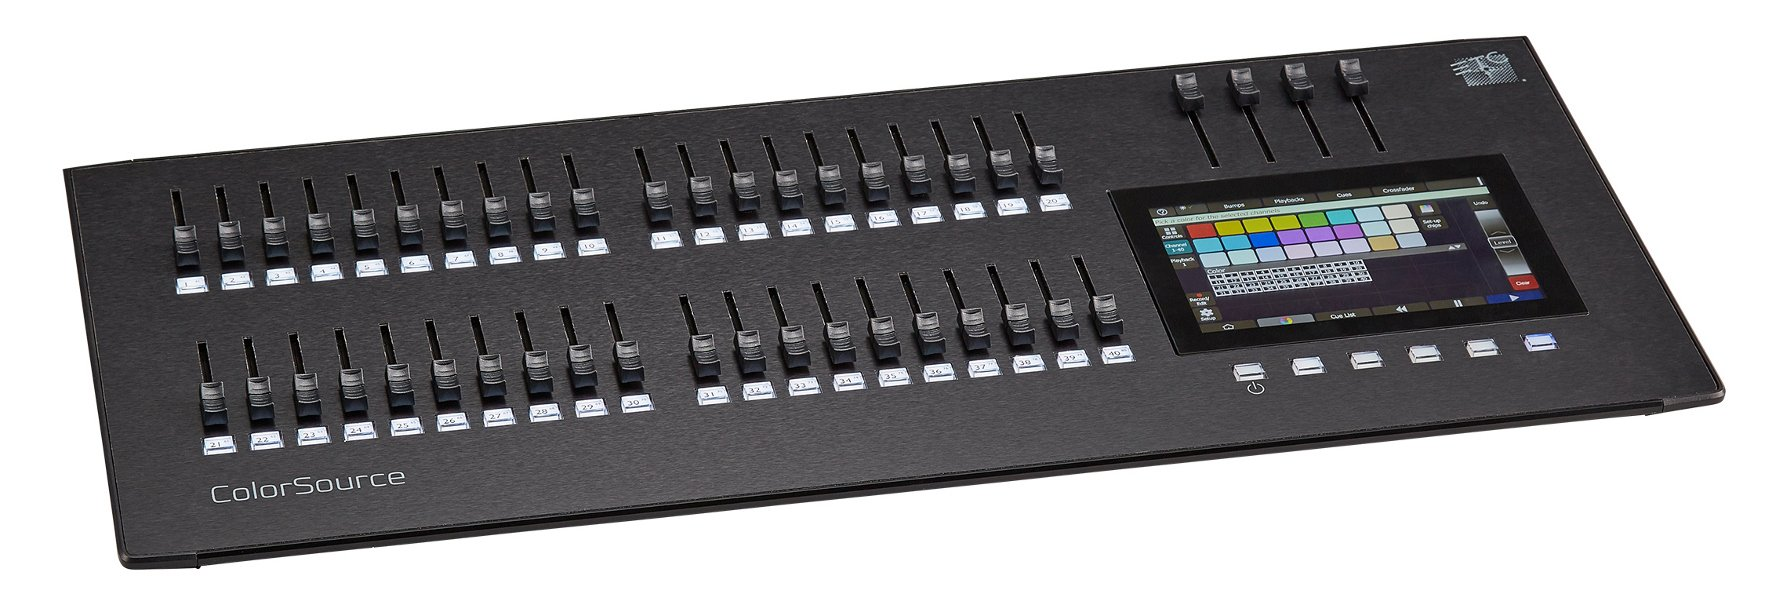 ColorSource 40 Console with 40 Faders and Multi-Touch Display